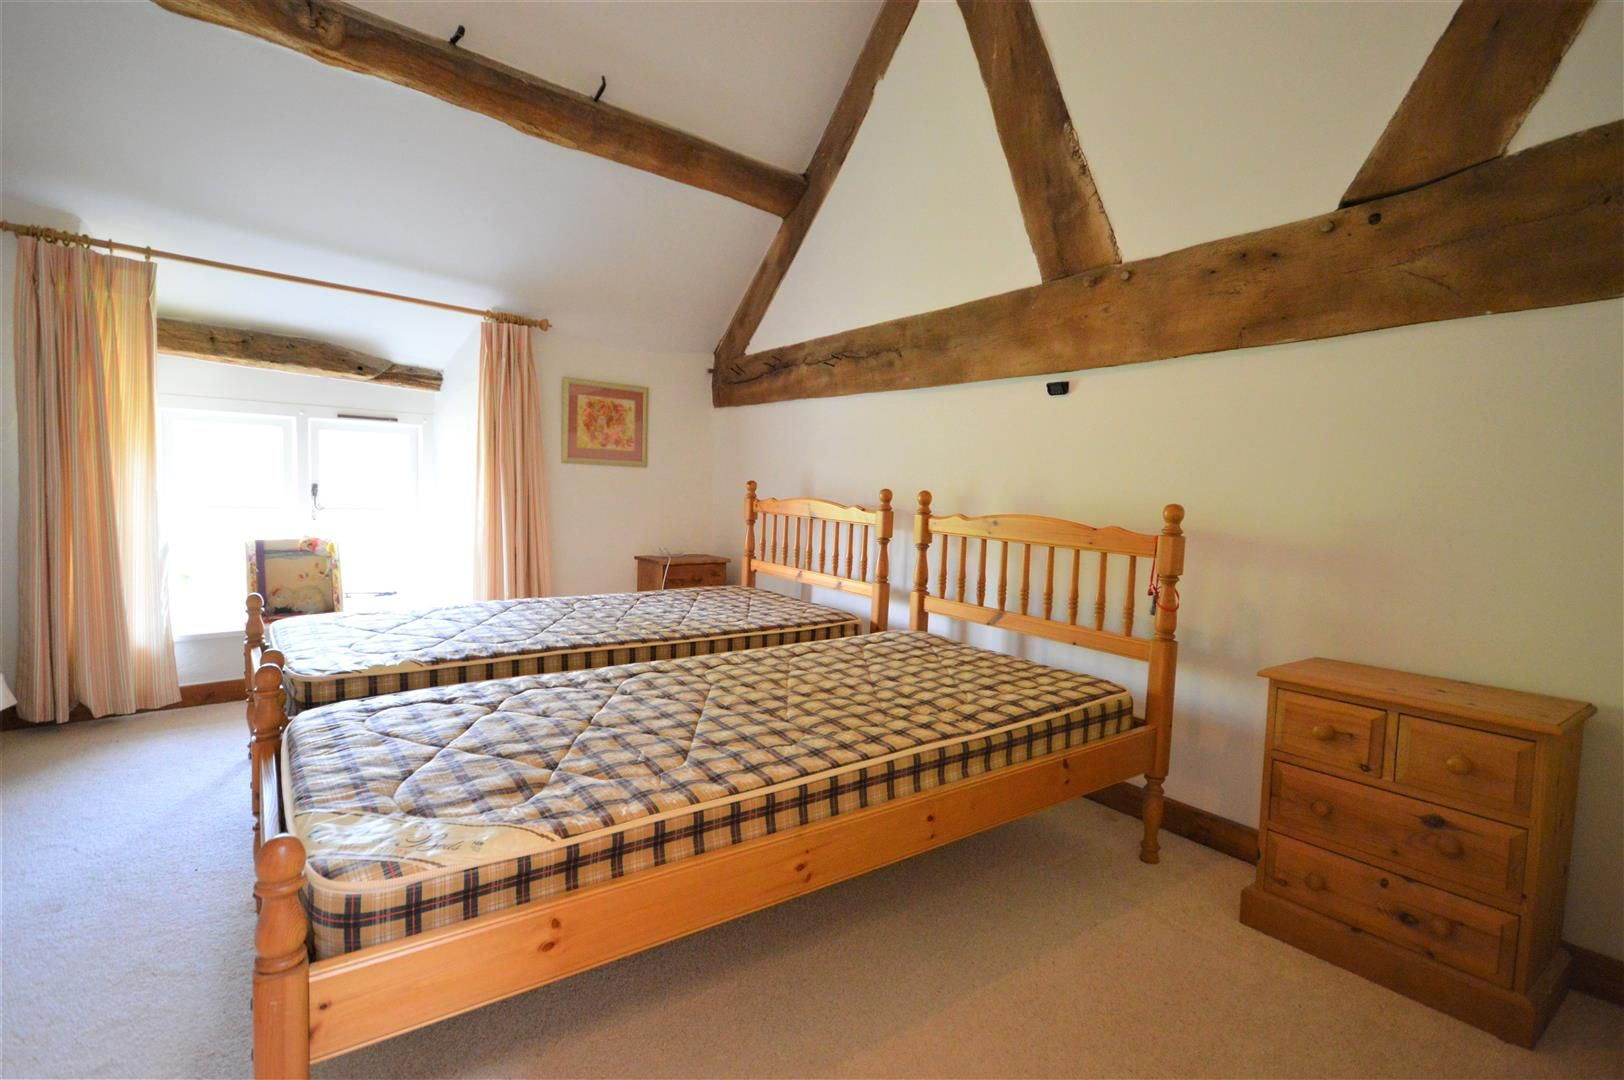 3 bed barn-conversion for sale in Stoke Prior  - Property Image 14